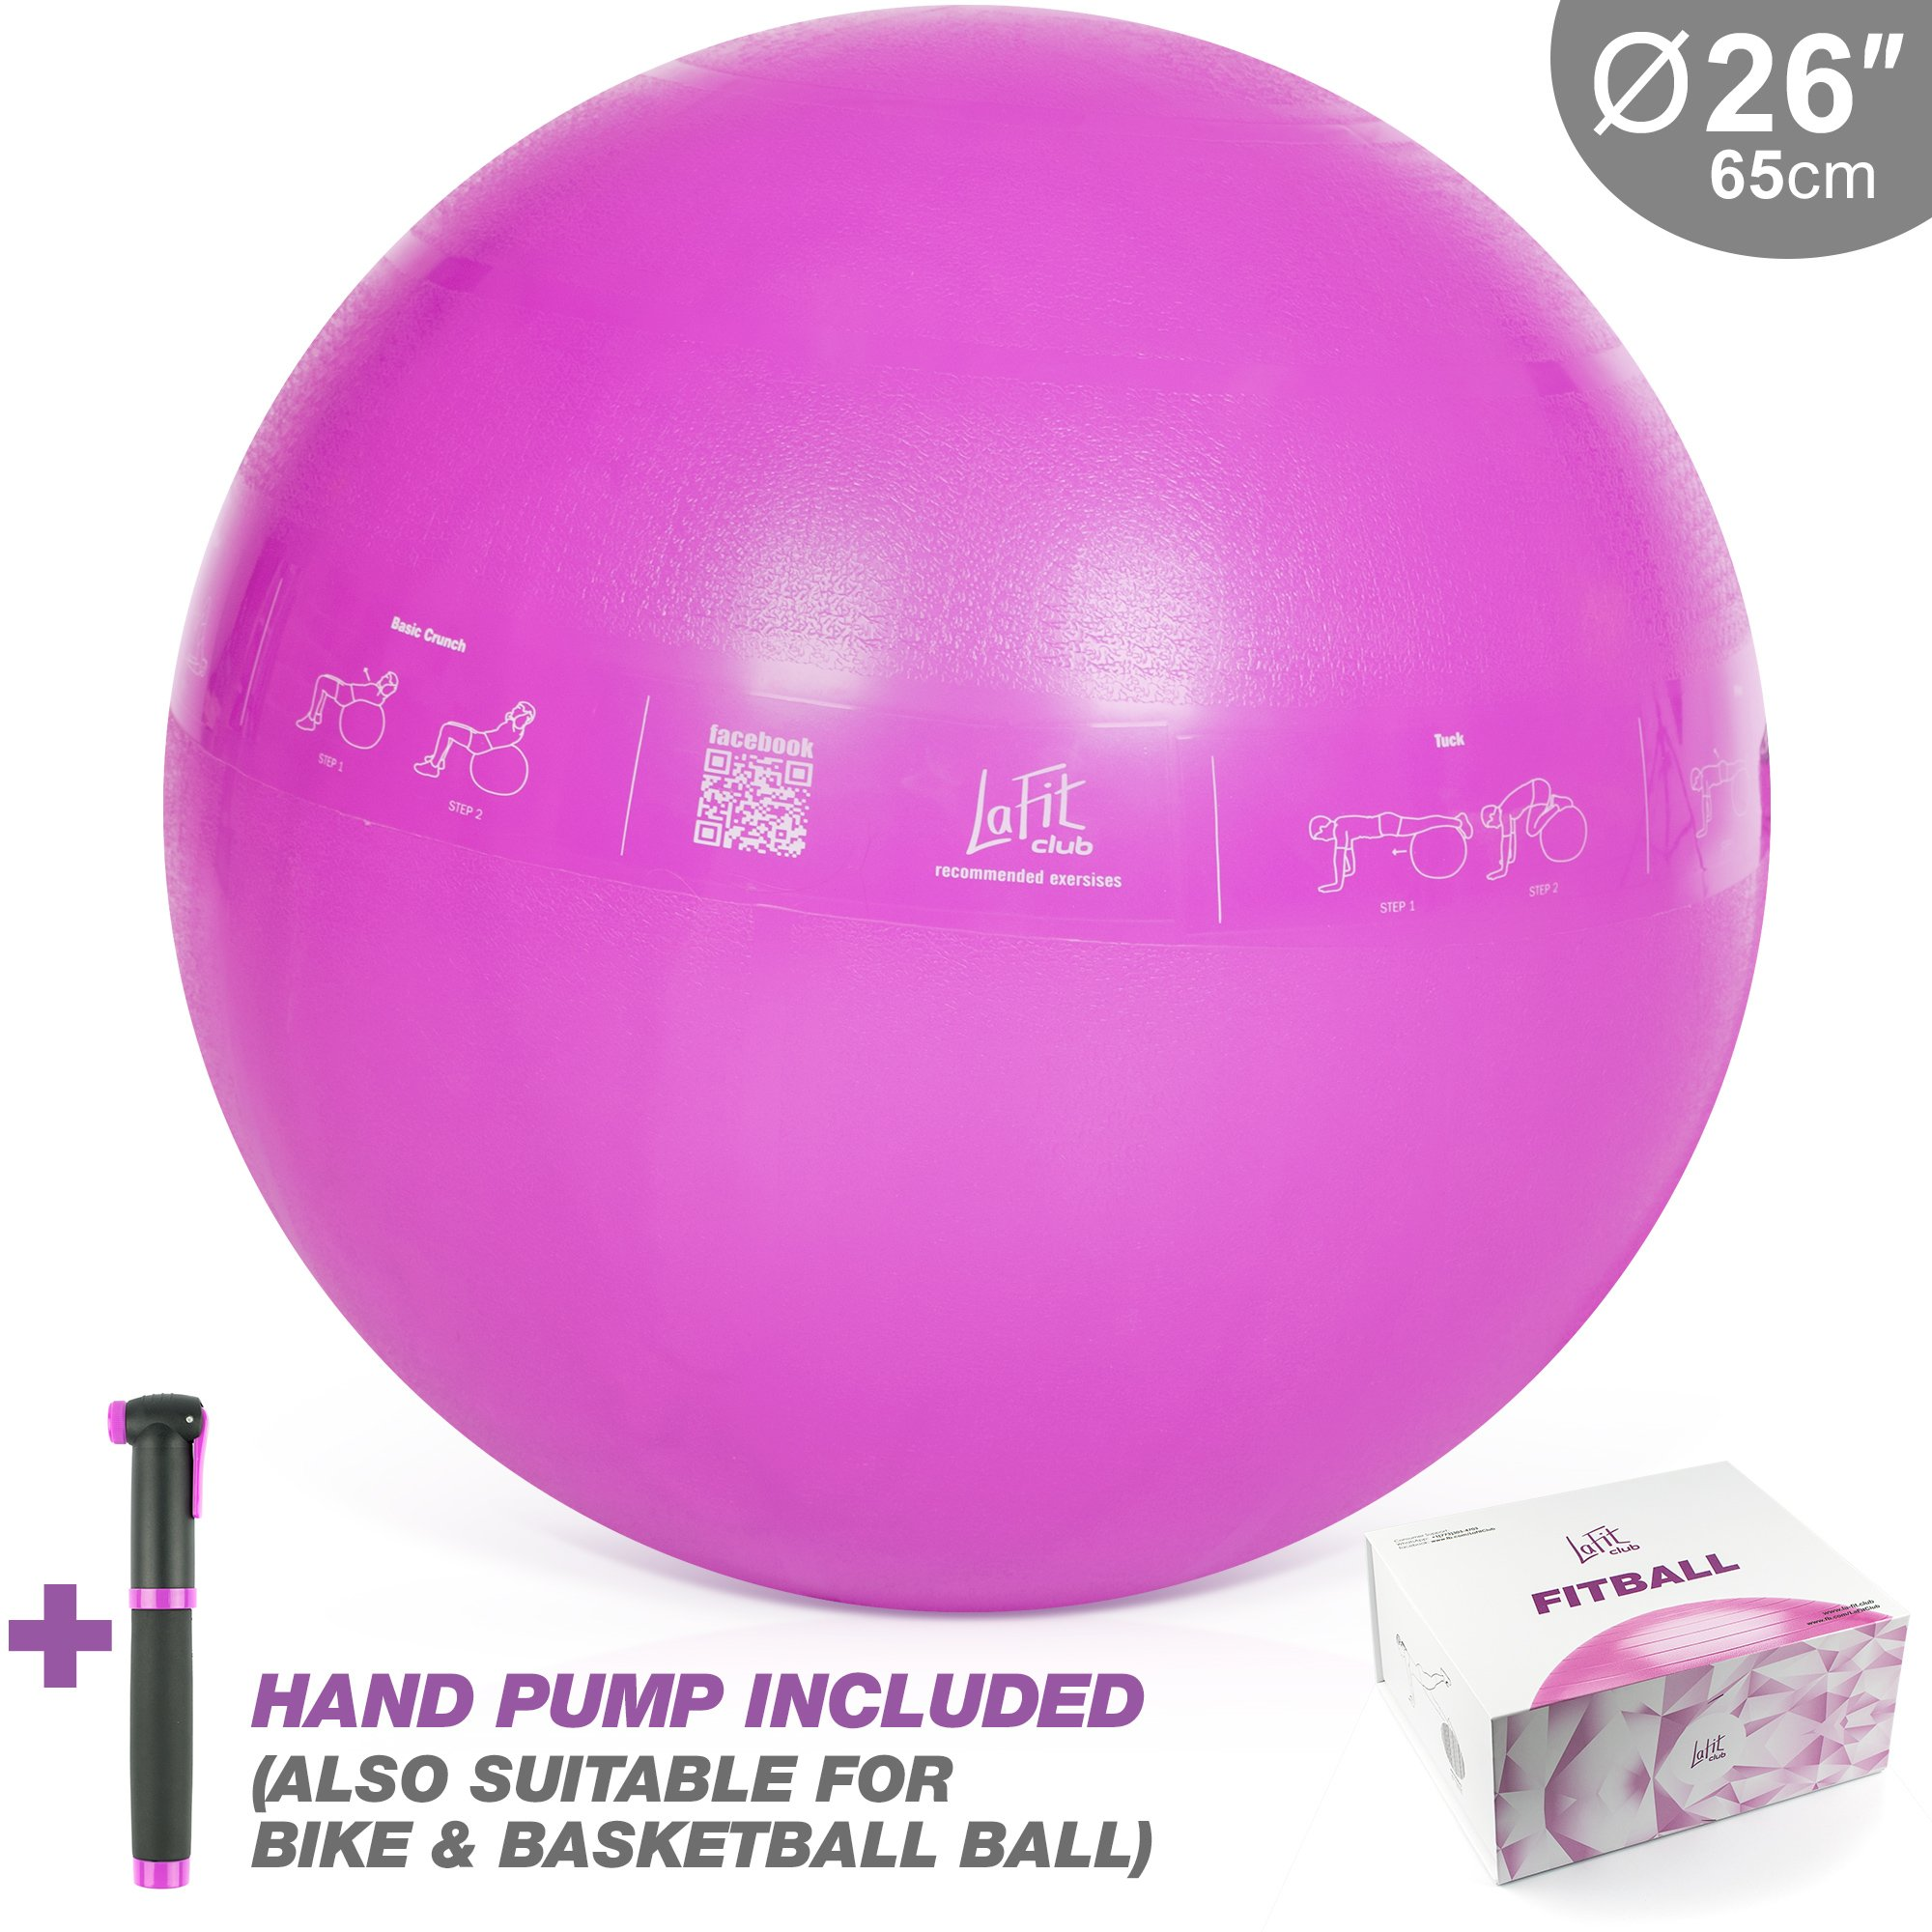 LAFIT CLUB 65 cm Pink Exercise Ball - Yoga Ball with Pump - Gym Ball for Yoga - Stability Swiss Sitting Fit Ball - Ball for Workout and Gym